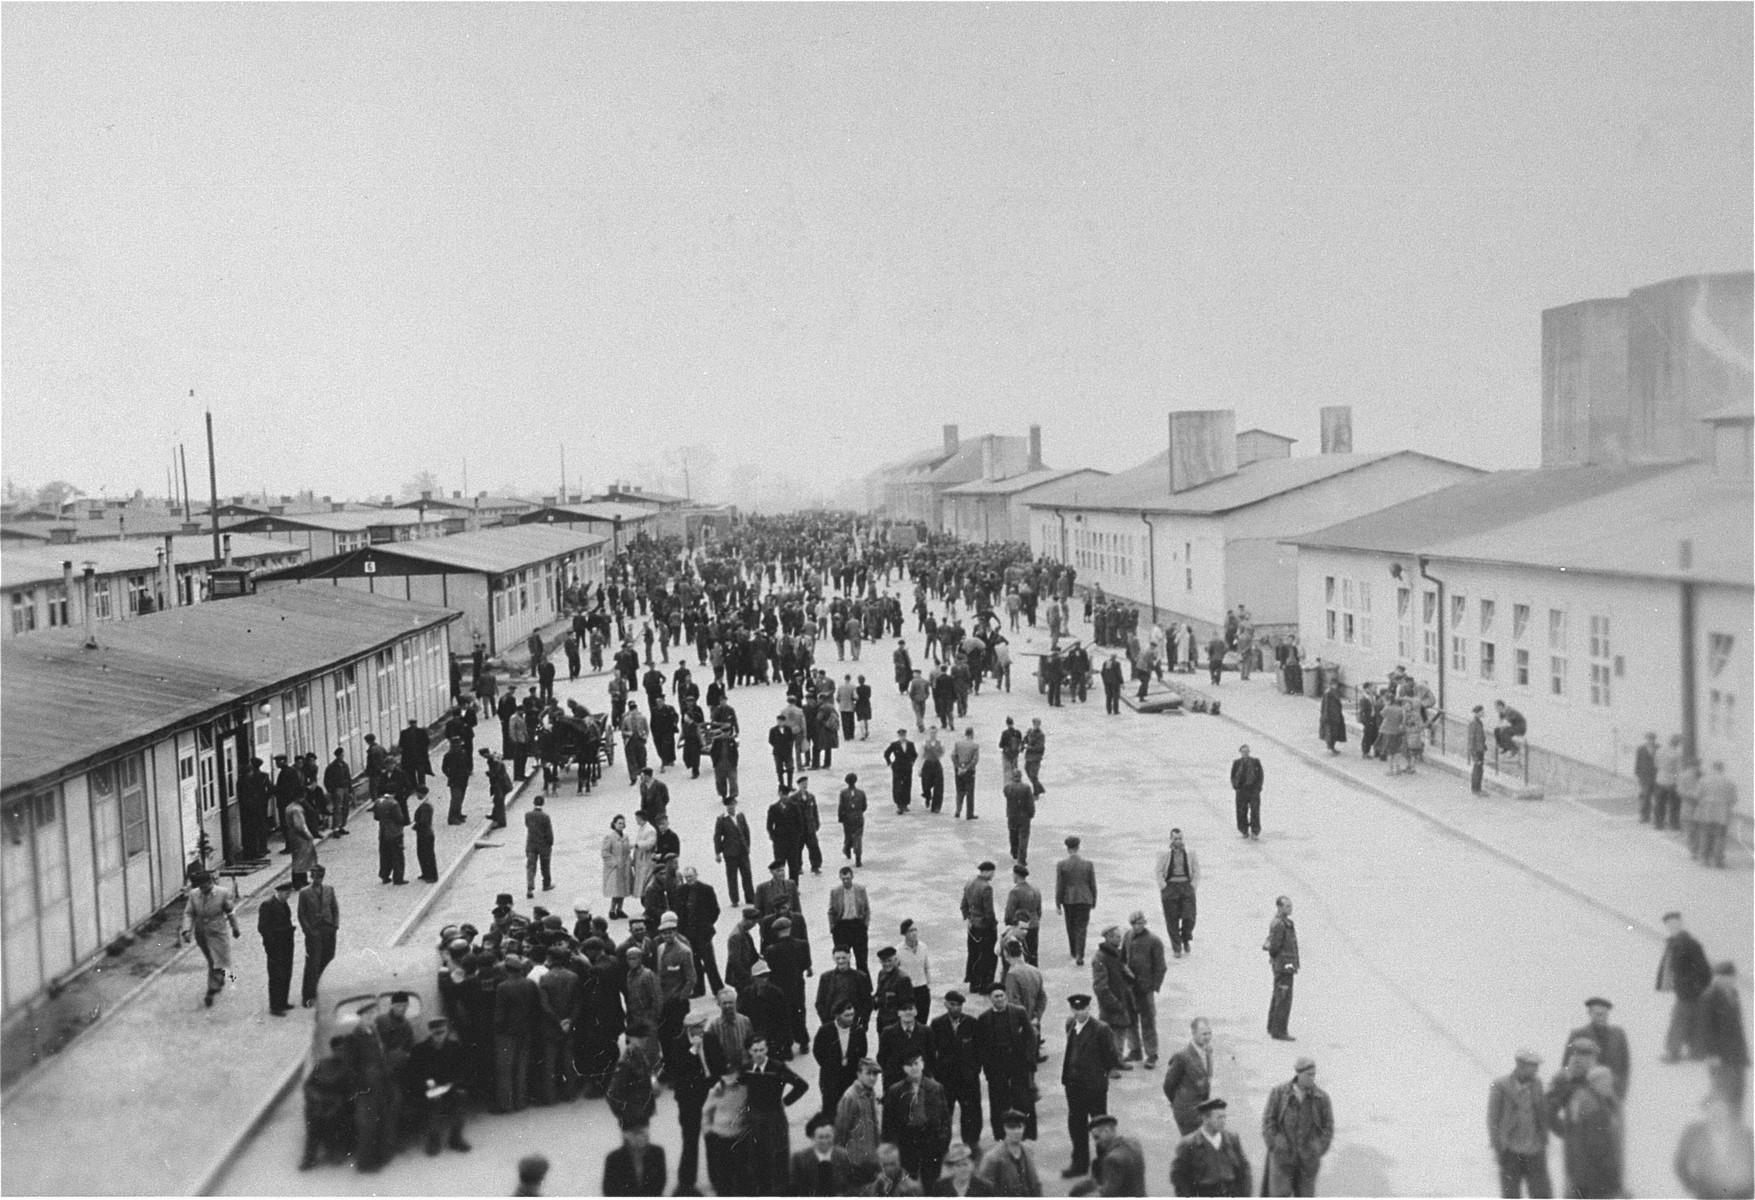 Survivors walk along the main street of the Mauthausen concentration camp.